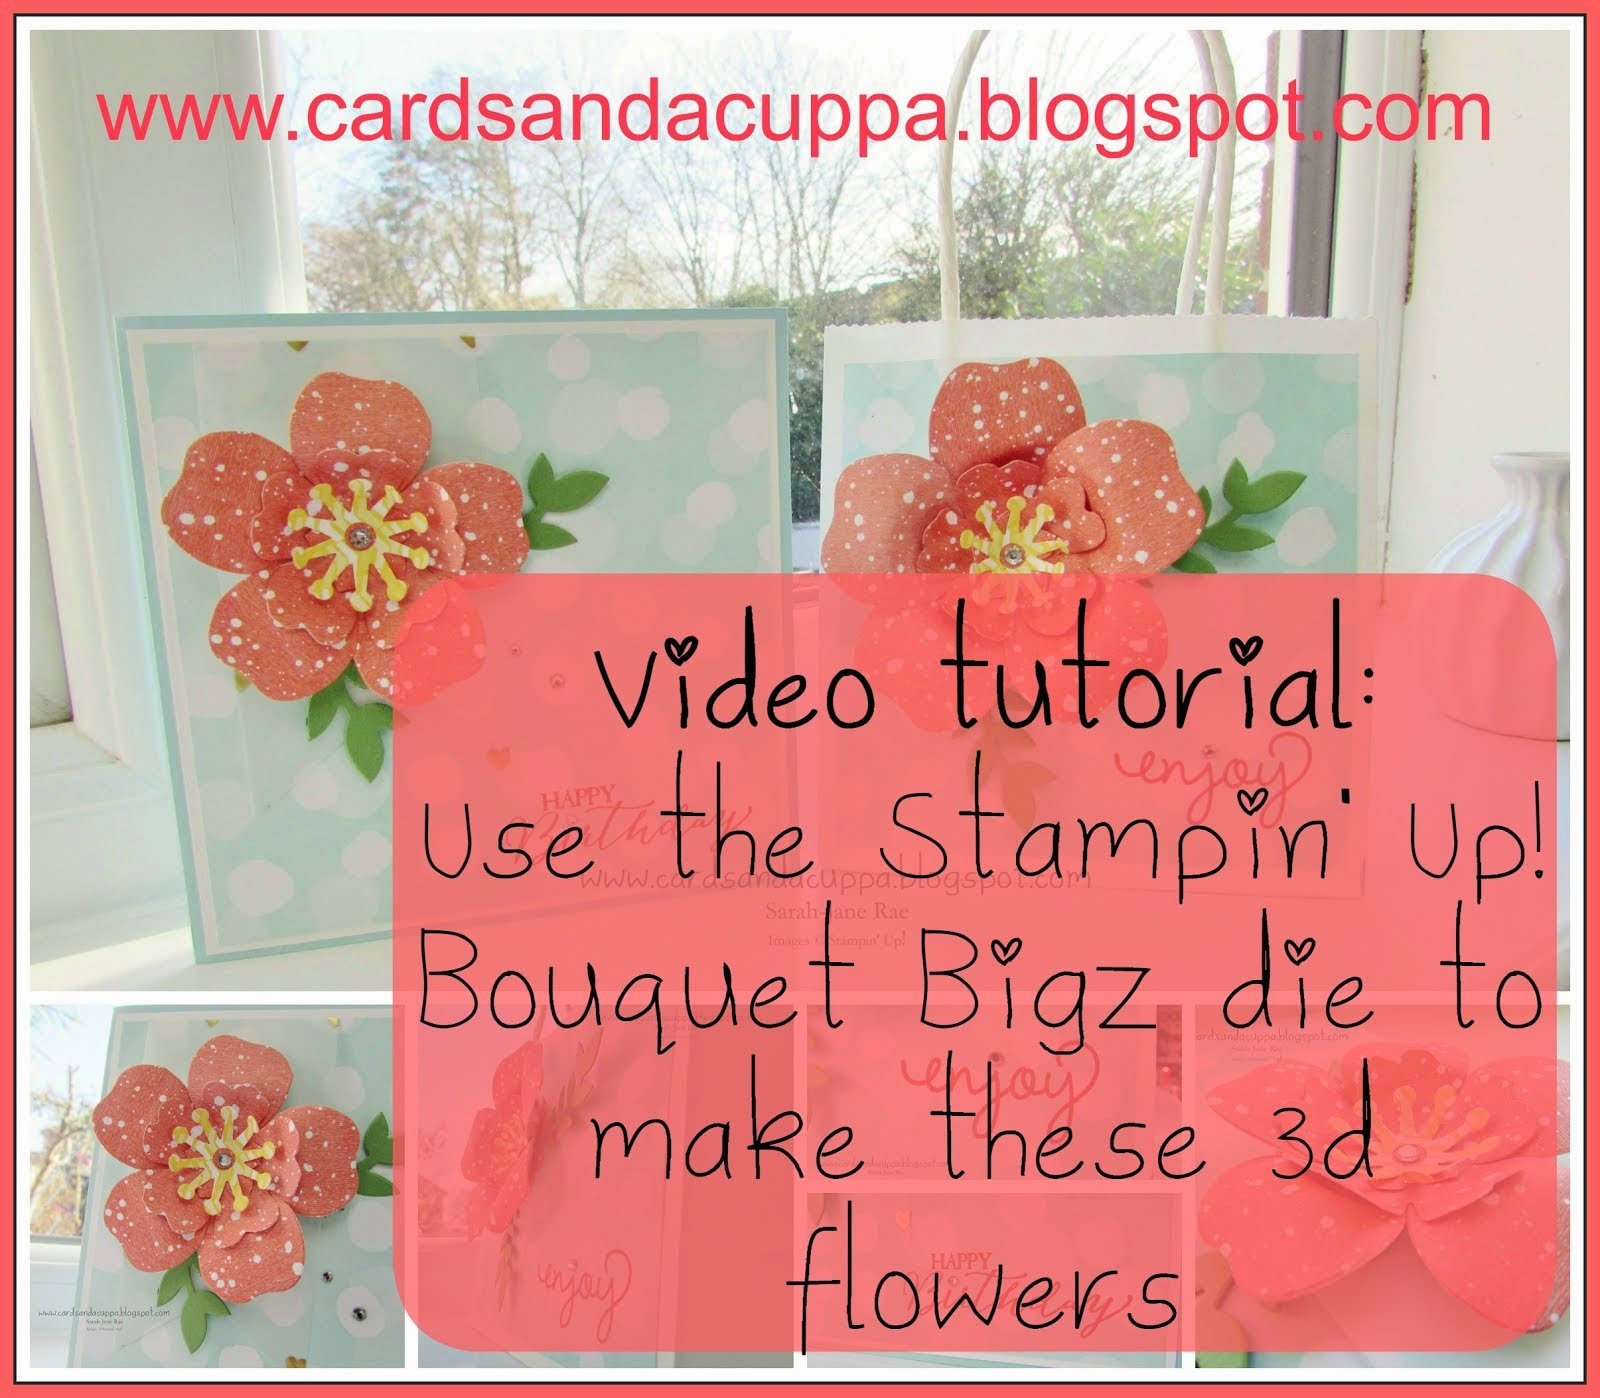 Postable 3d Flower. Easy to add to your cards and gifts!